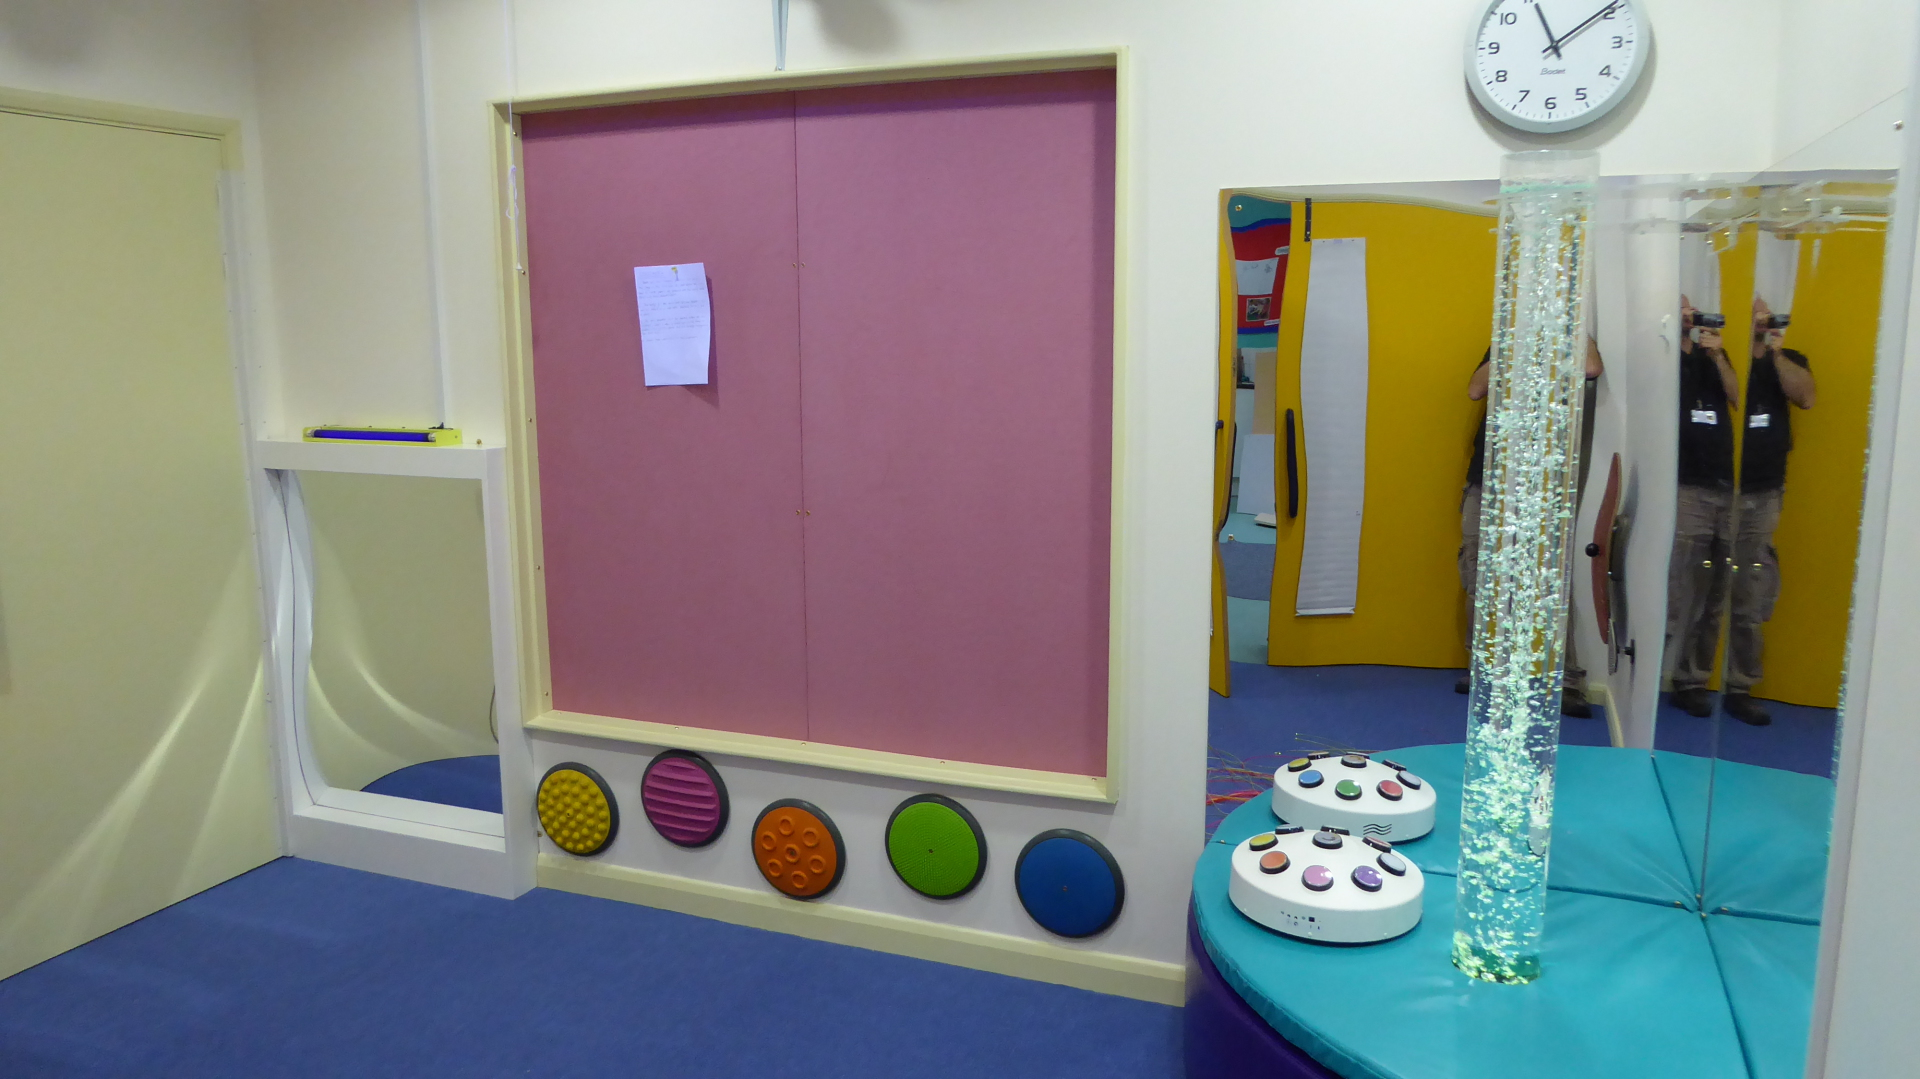 After - The old window transformed into a beautiful new pin board